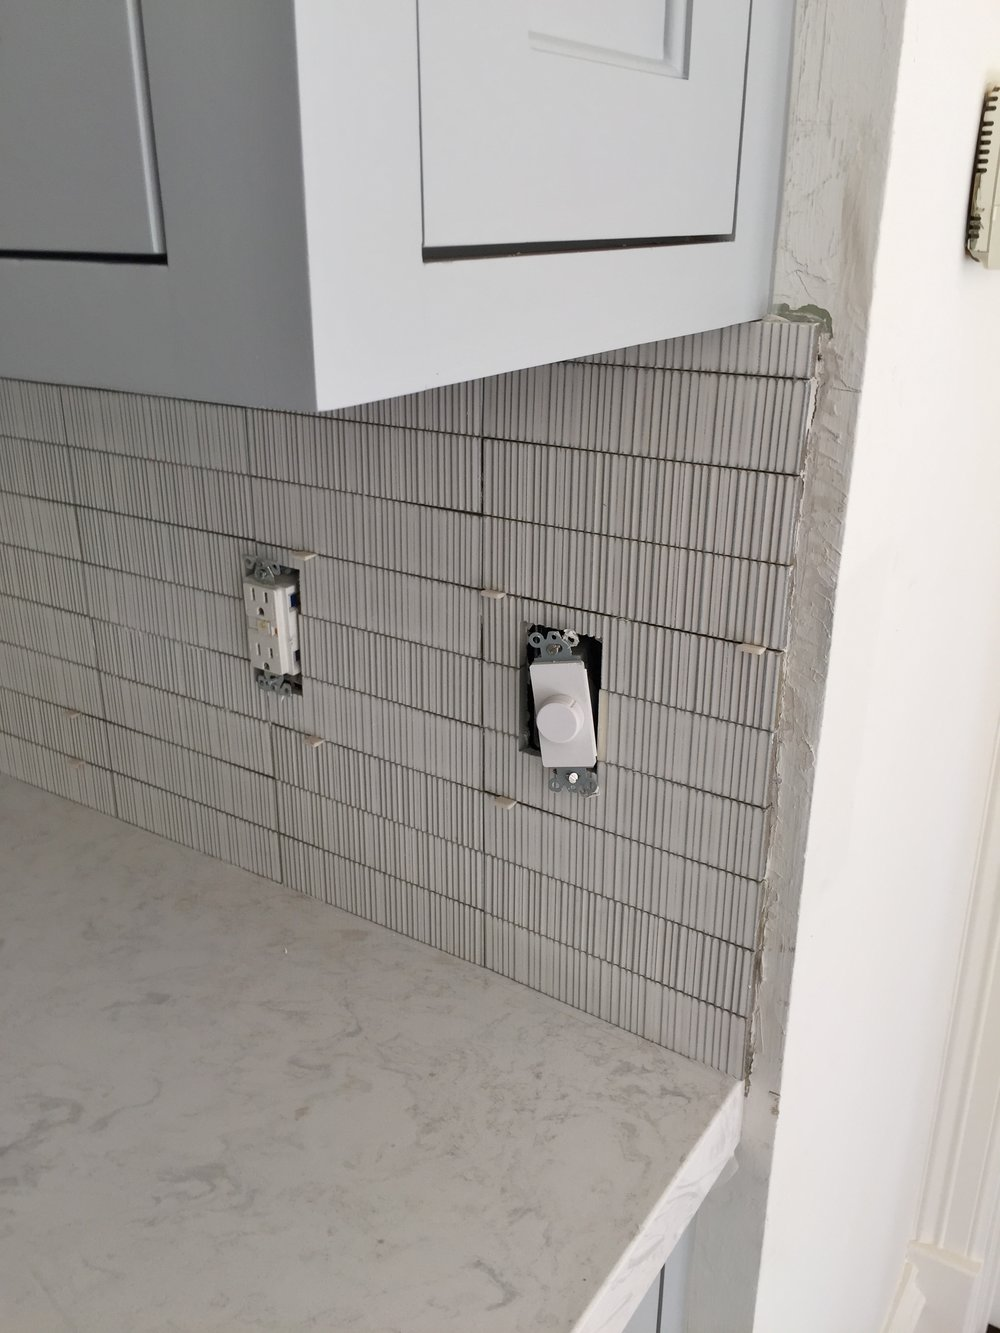 Backsplash Tile installation (incorrect)